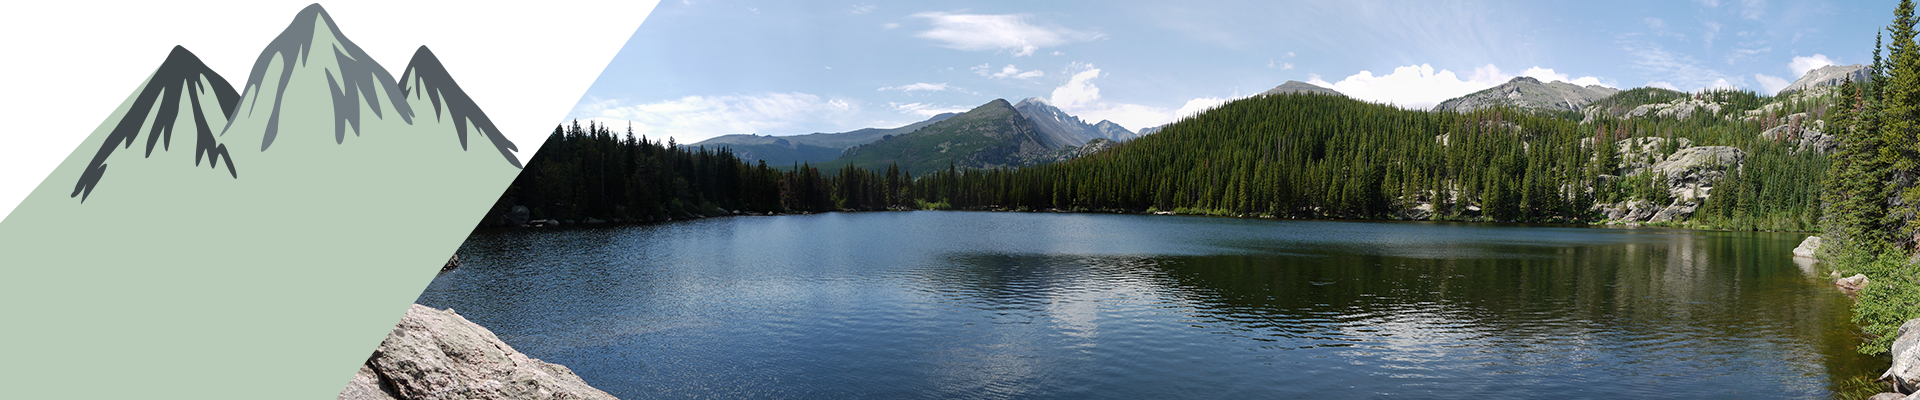 Bear Lake in the Rocky Mountain National Park.